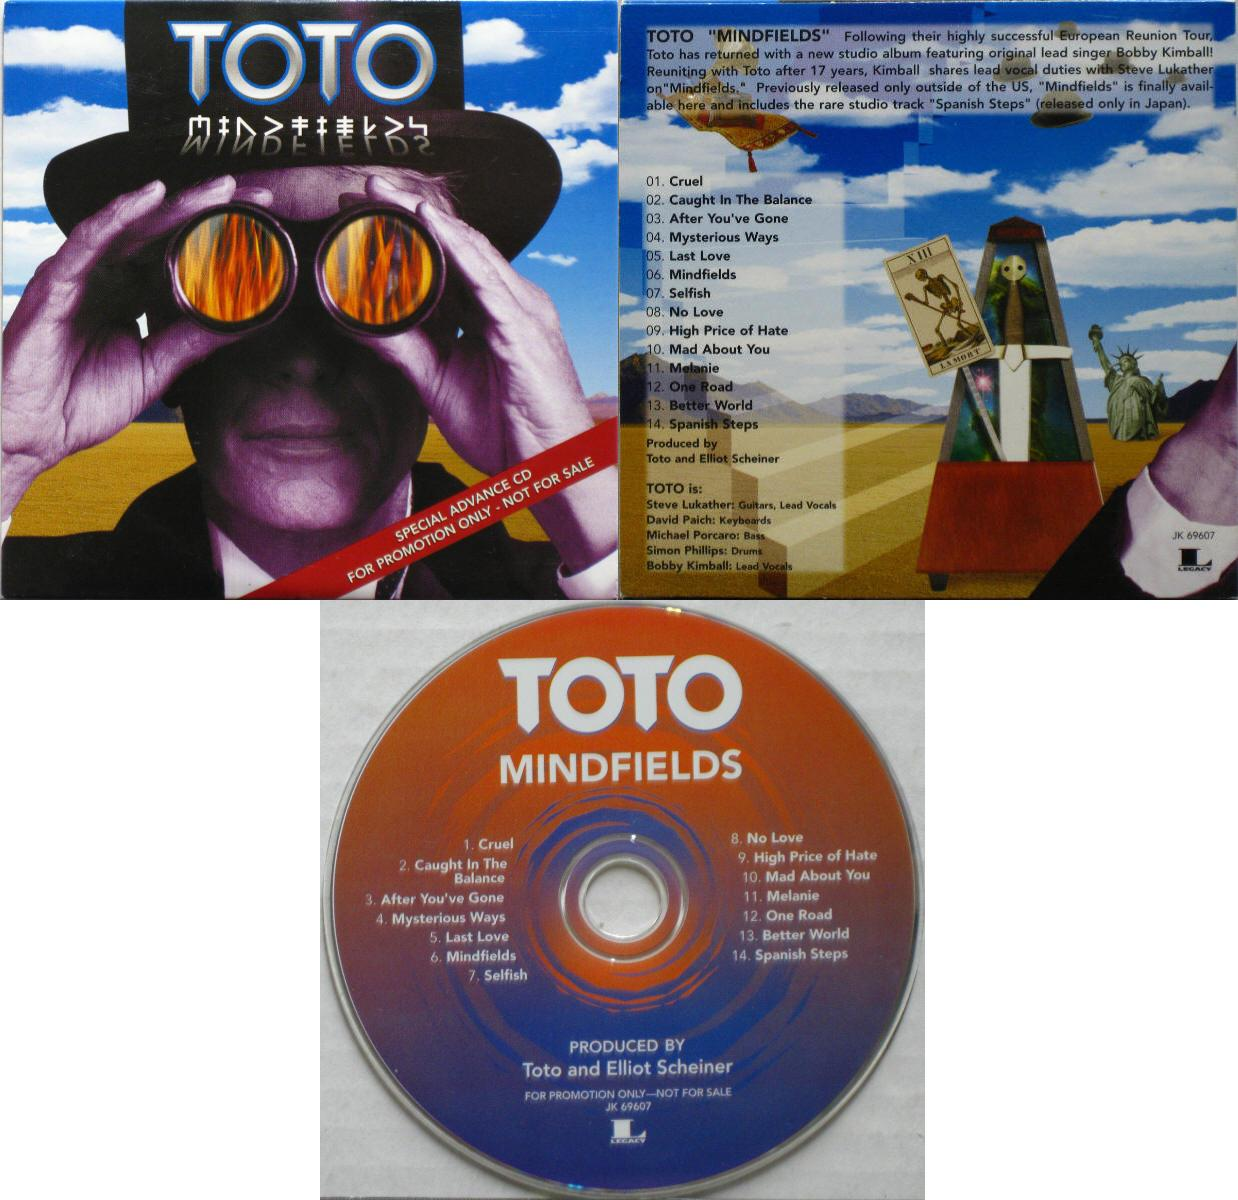 Toto Mindfields Records, LPs, Vinyl and CDs - MusicStack